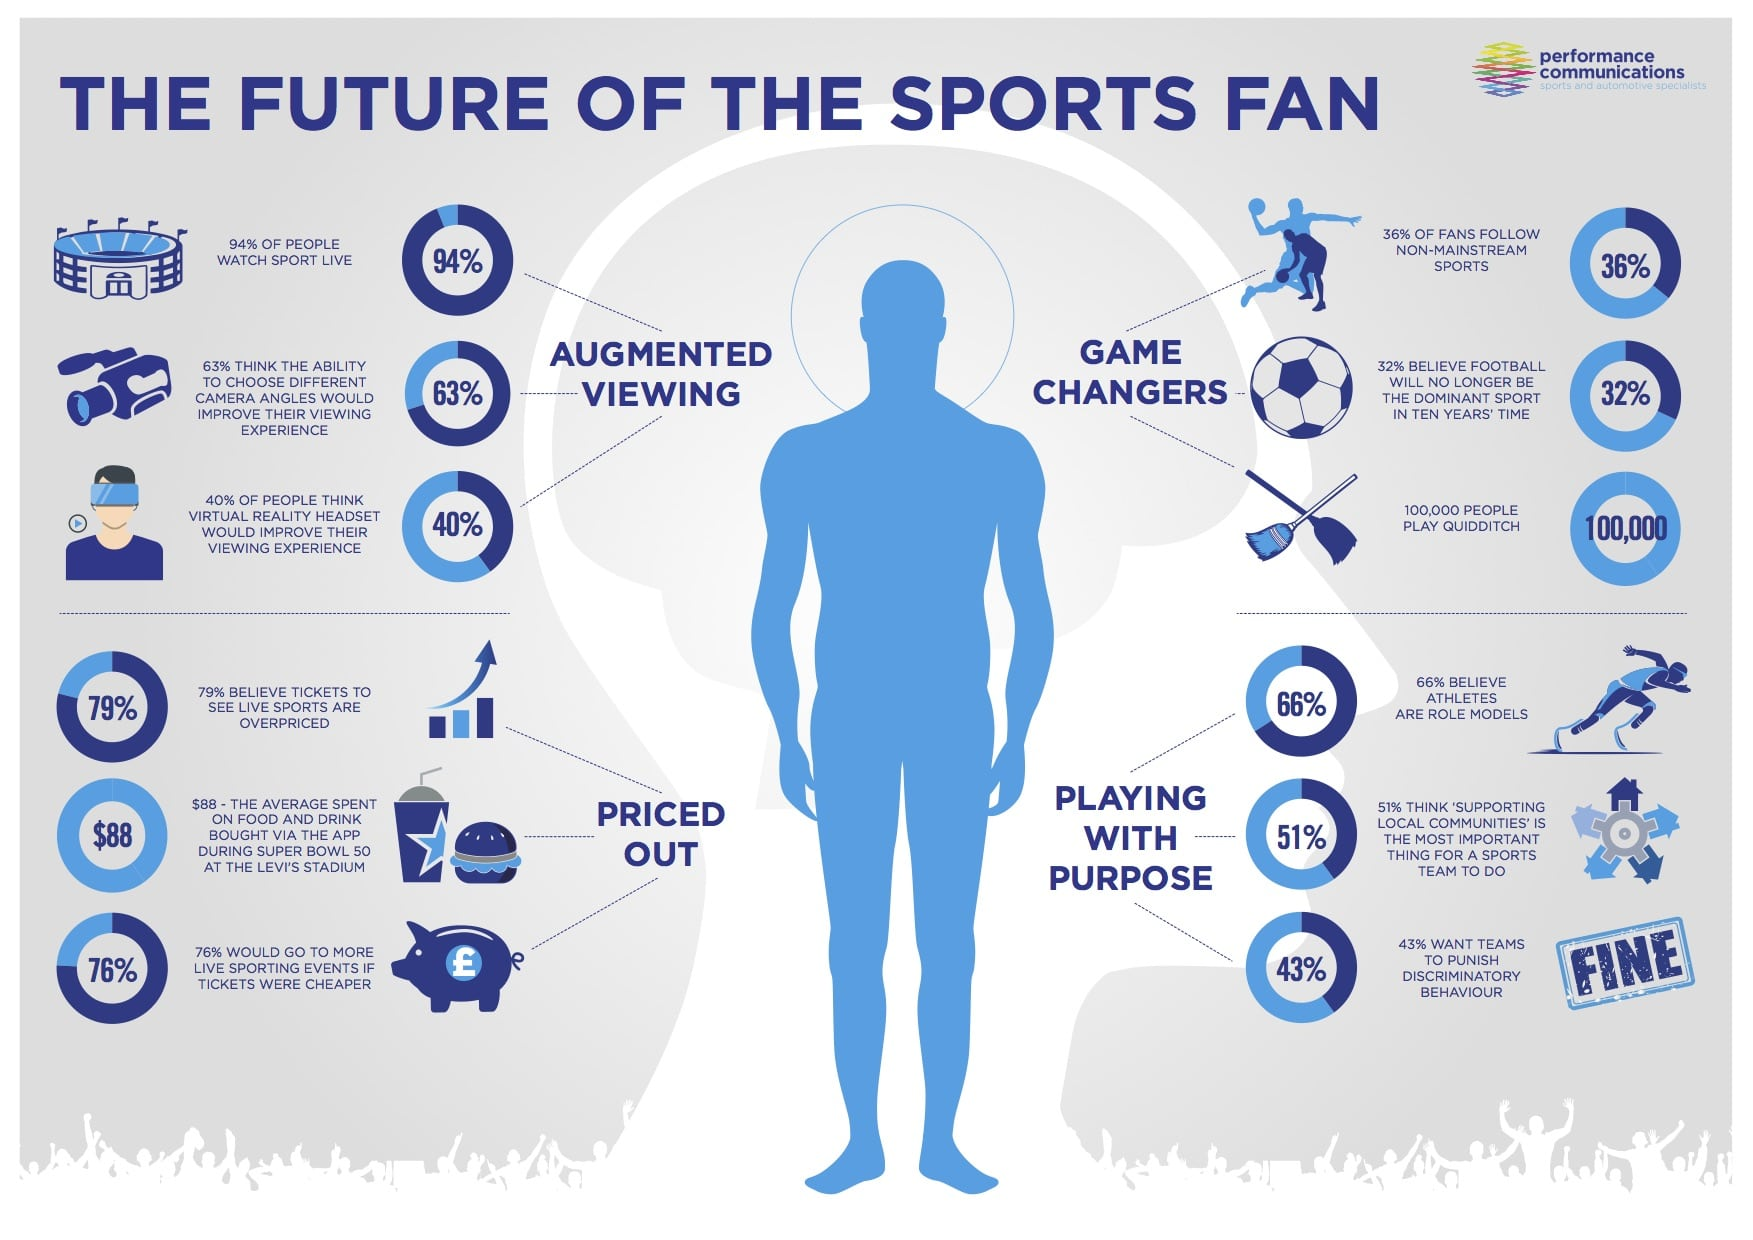 Fan engagement in the future